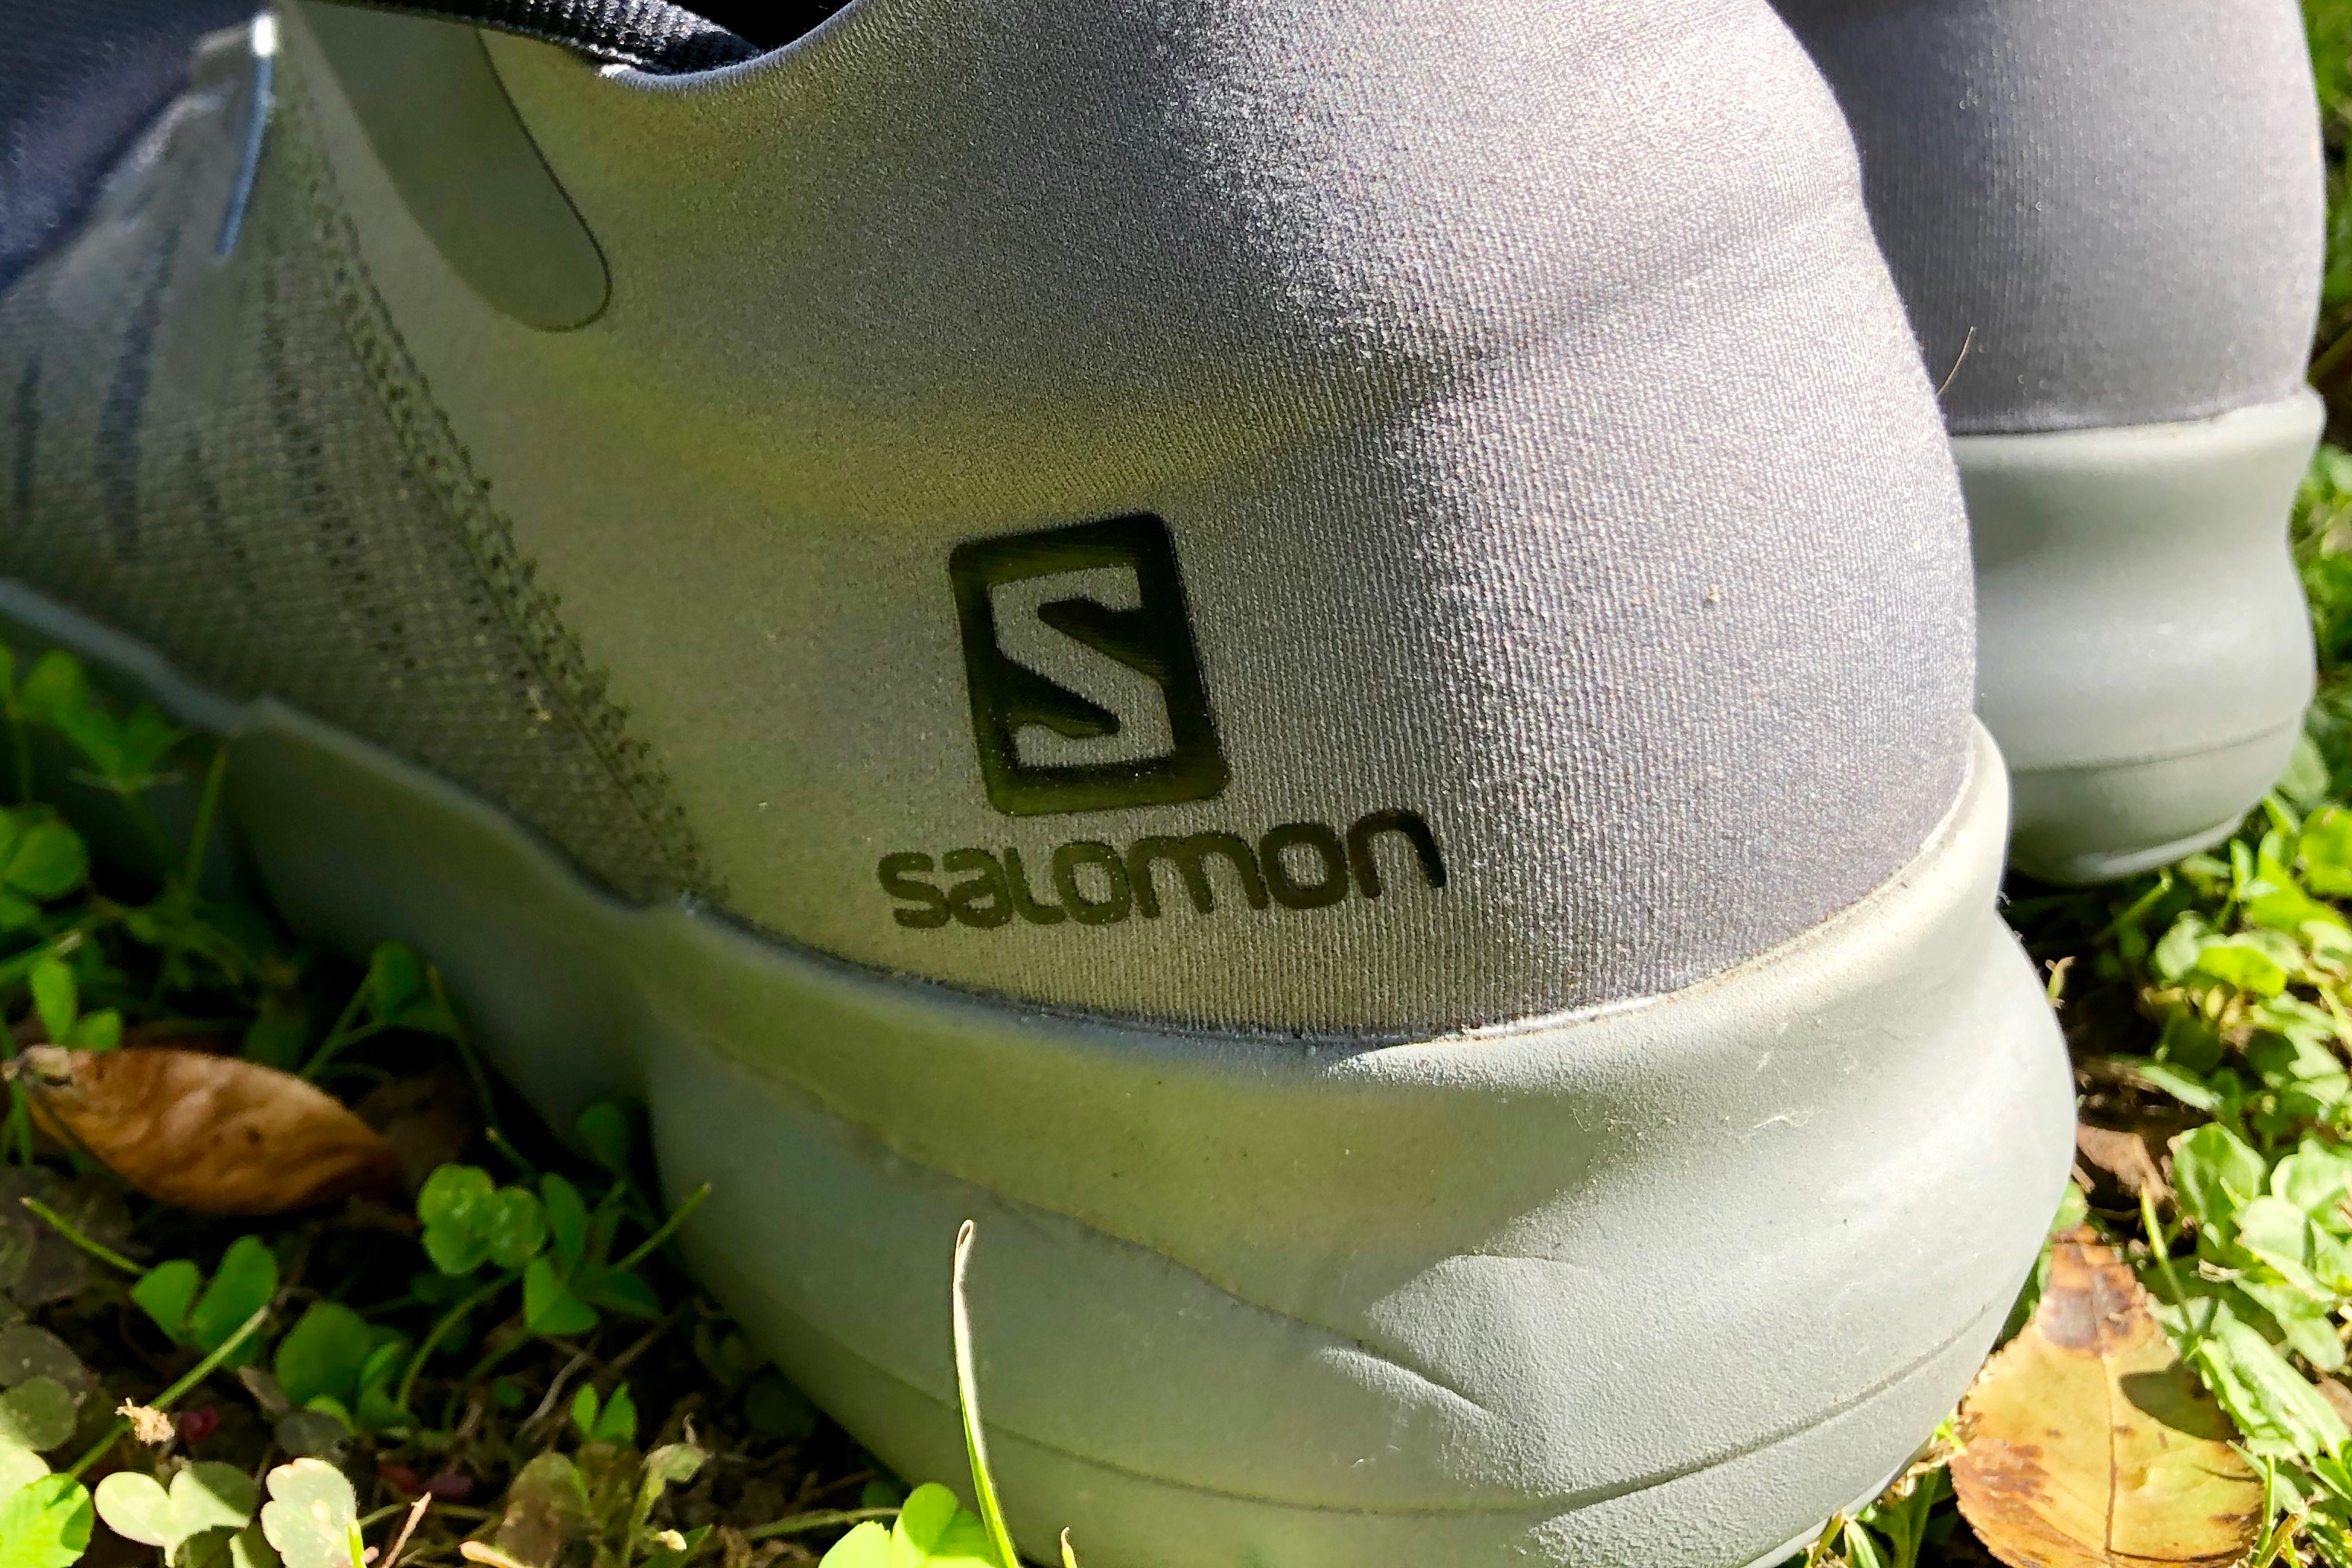 Salomon Predict RA road running shoes